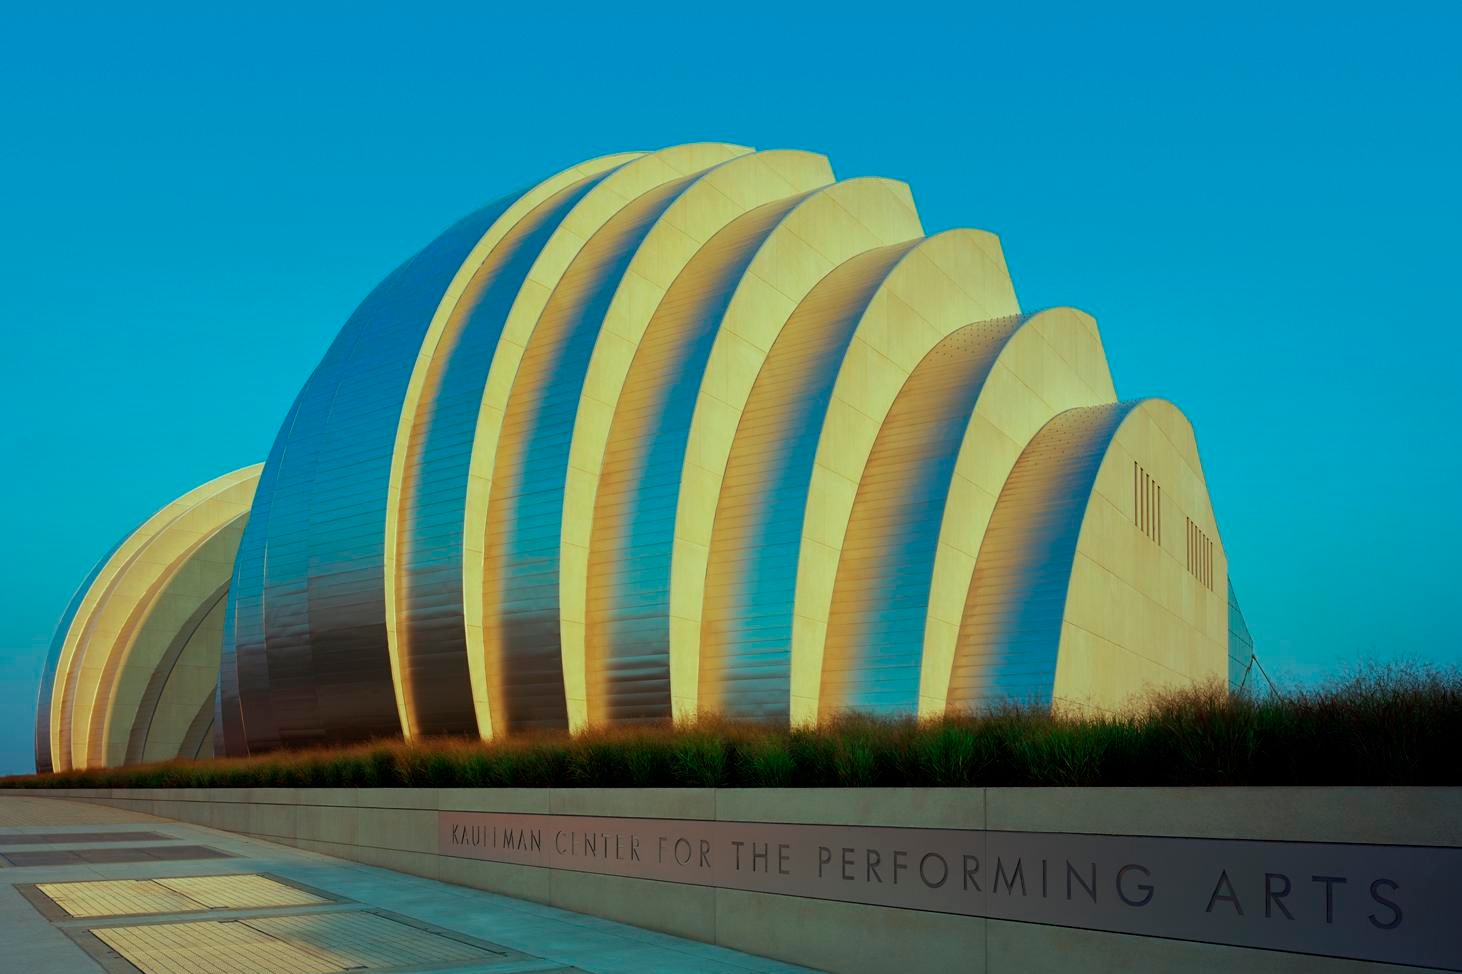 Kauffman center - Photo courtesy of Tim Hursley. Image are owned by the Kauffman Center.